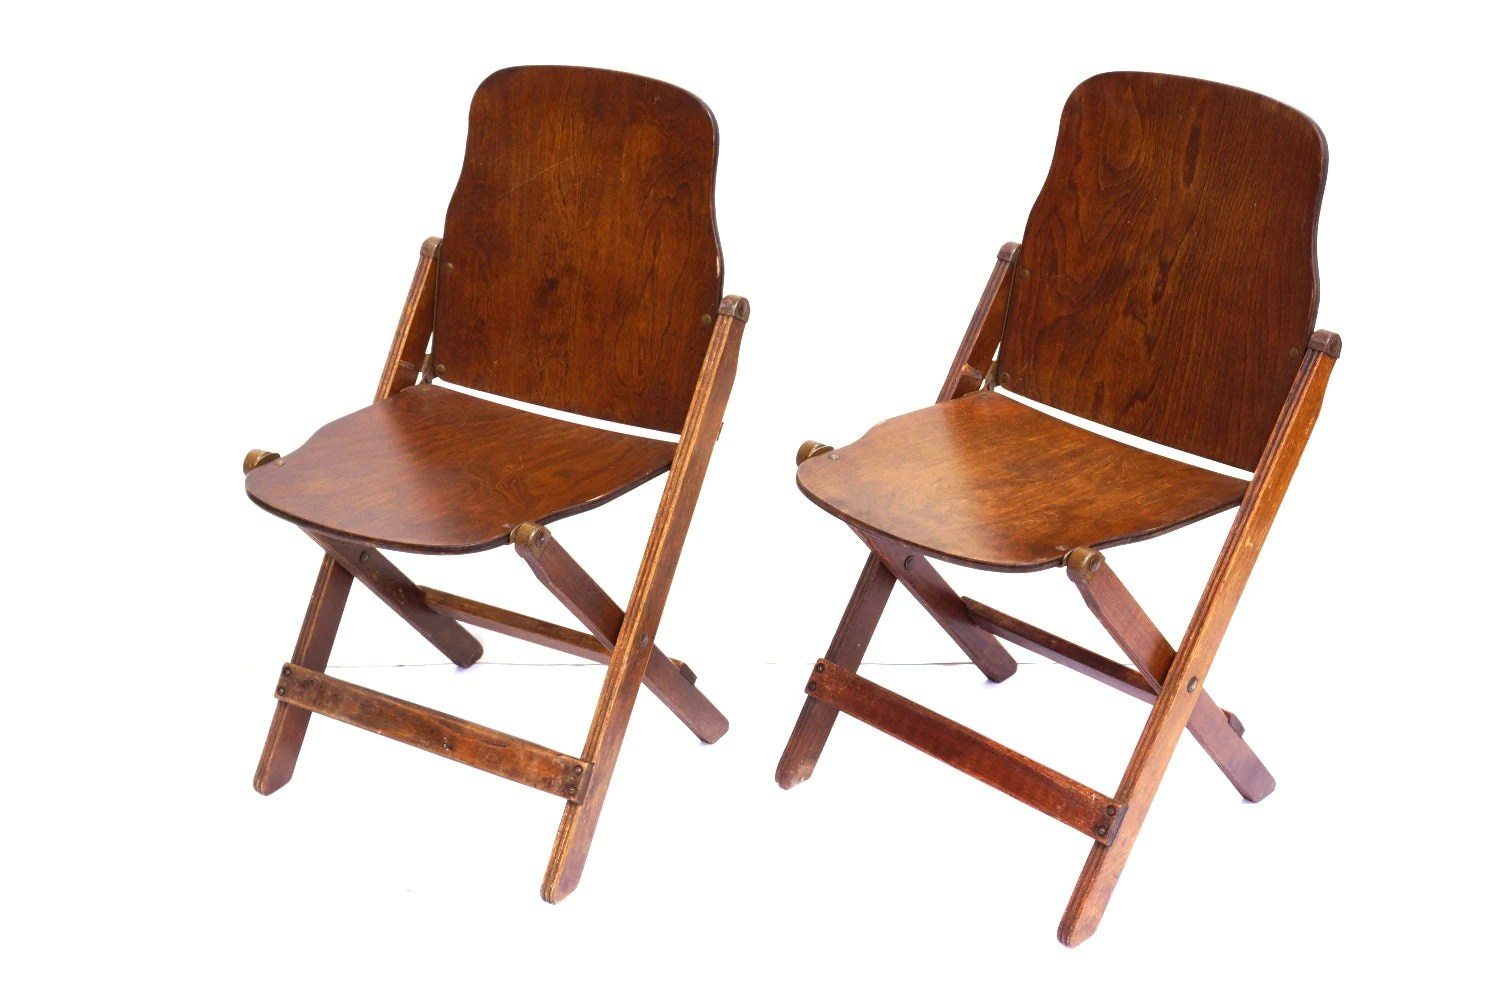 Antique Wooden Chair Vintage Antique Wood Folding Chairs With Brass Hardware Set